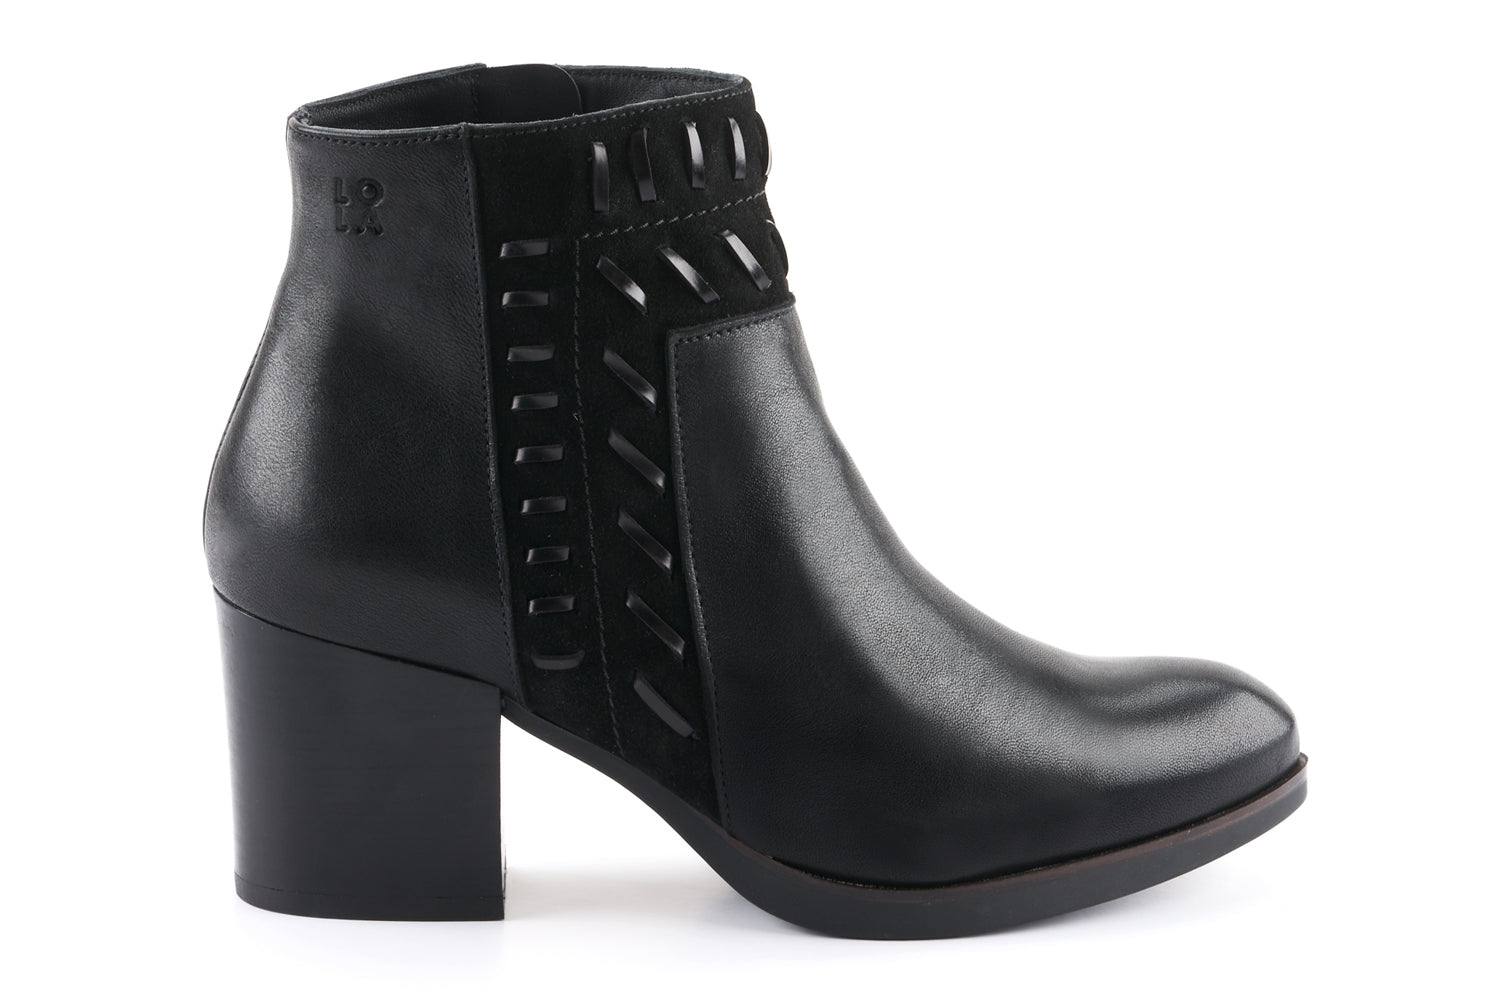 Sienna Leather Embellished Ankle Boot - Black